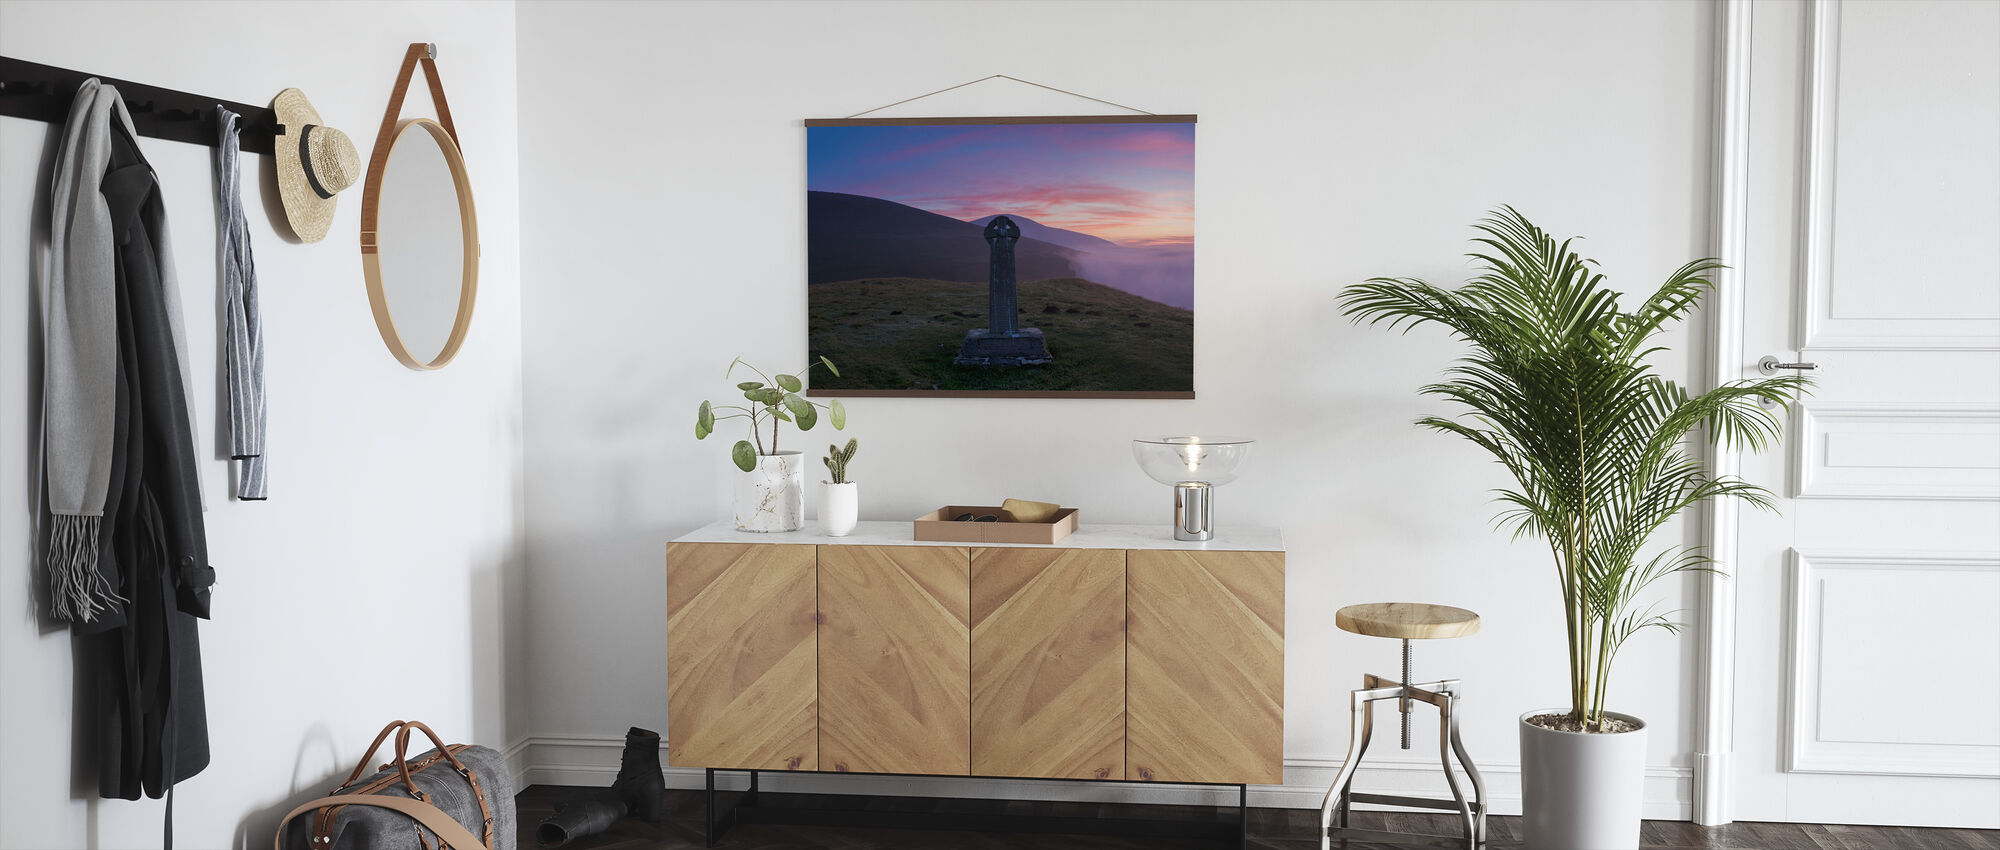 Skiddaw Shepherds Monument - Poster - Hall